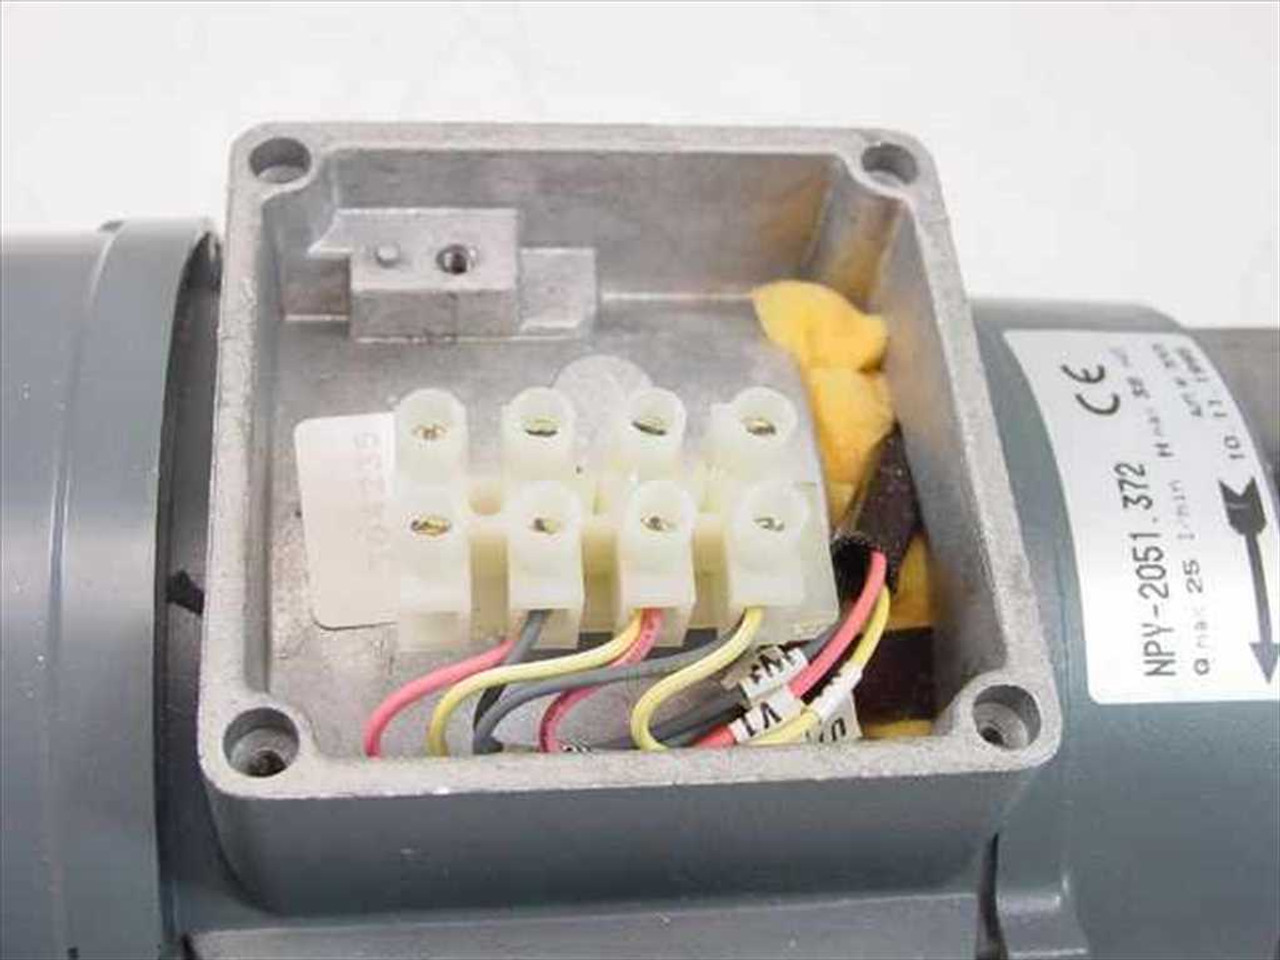 hight resolution of  atb af63 2b 7 motor runs well pump is for parts needs